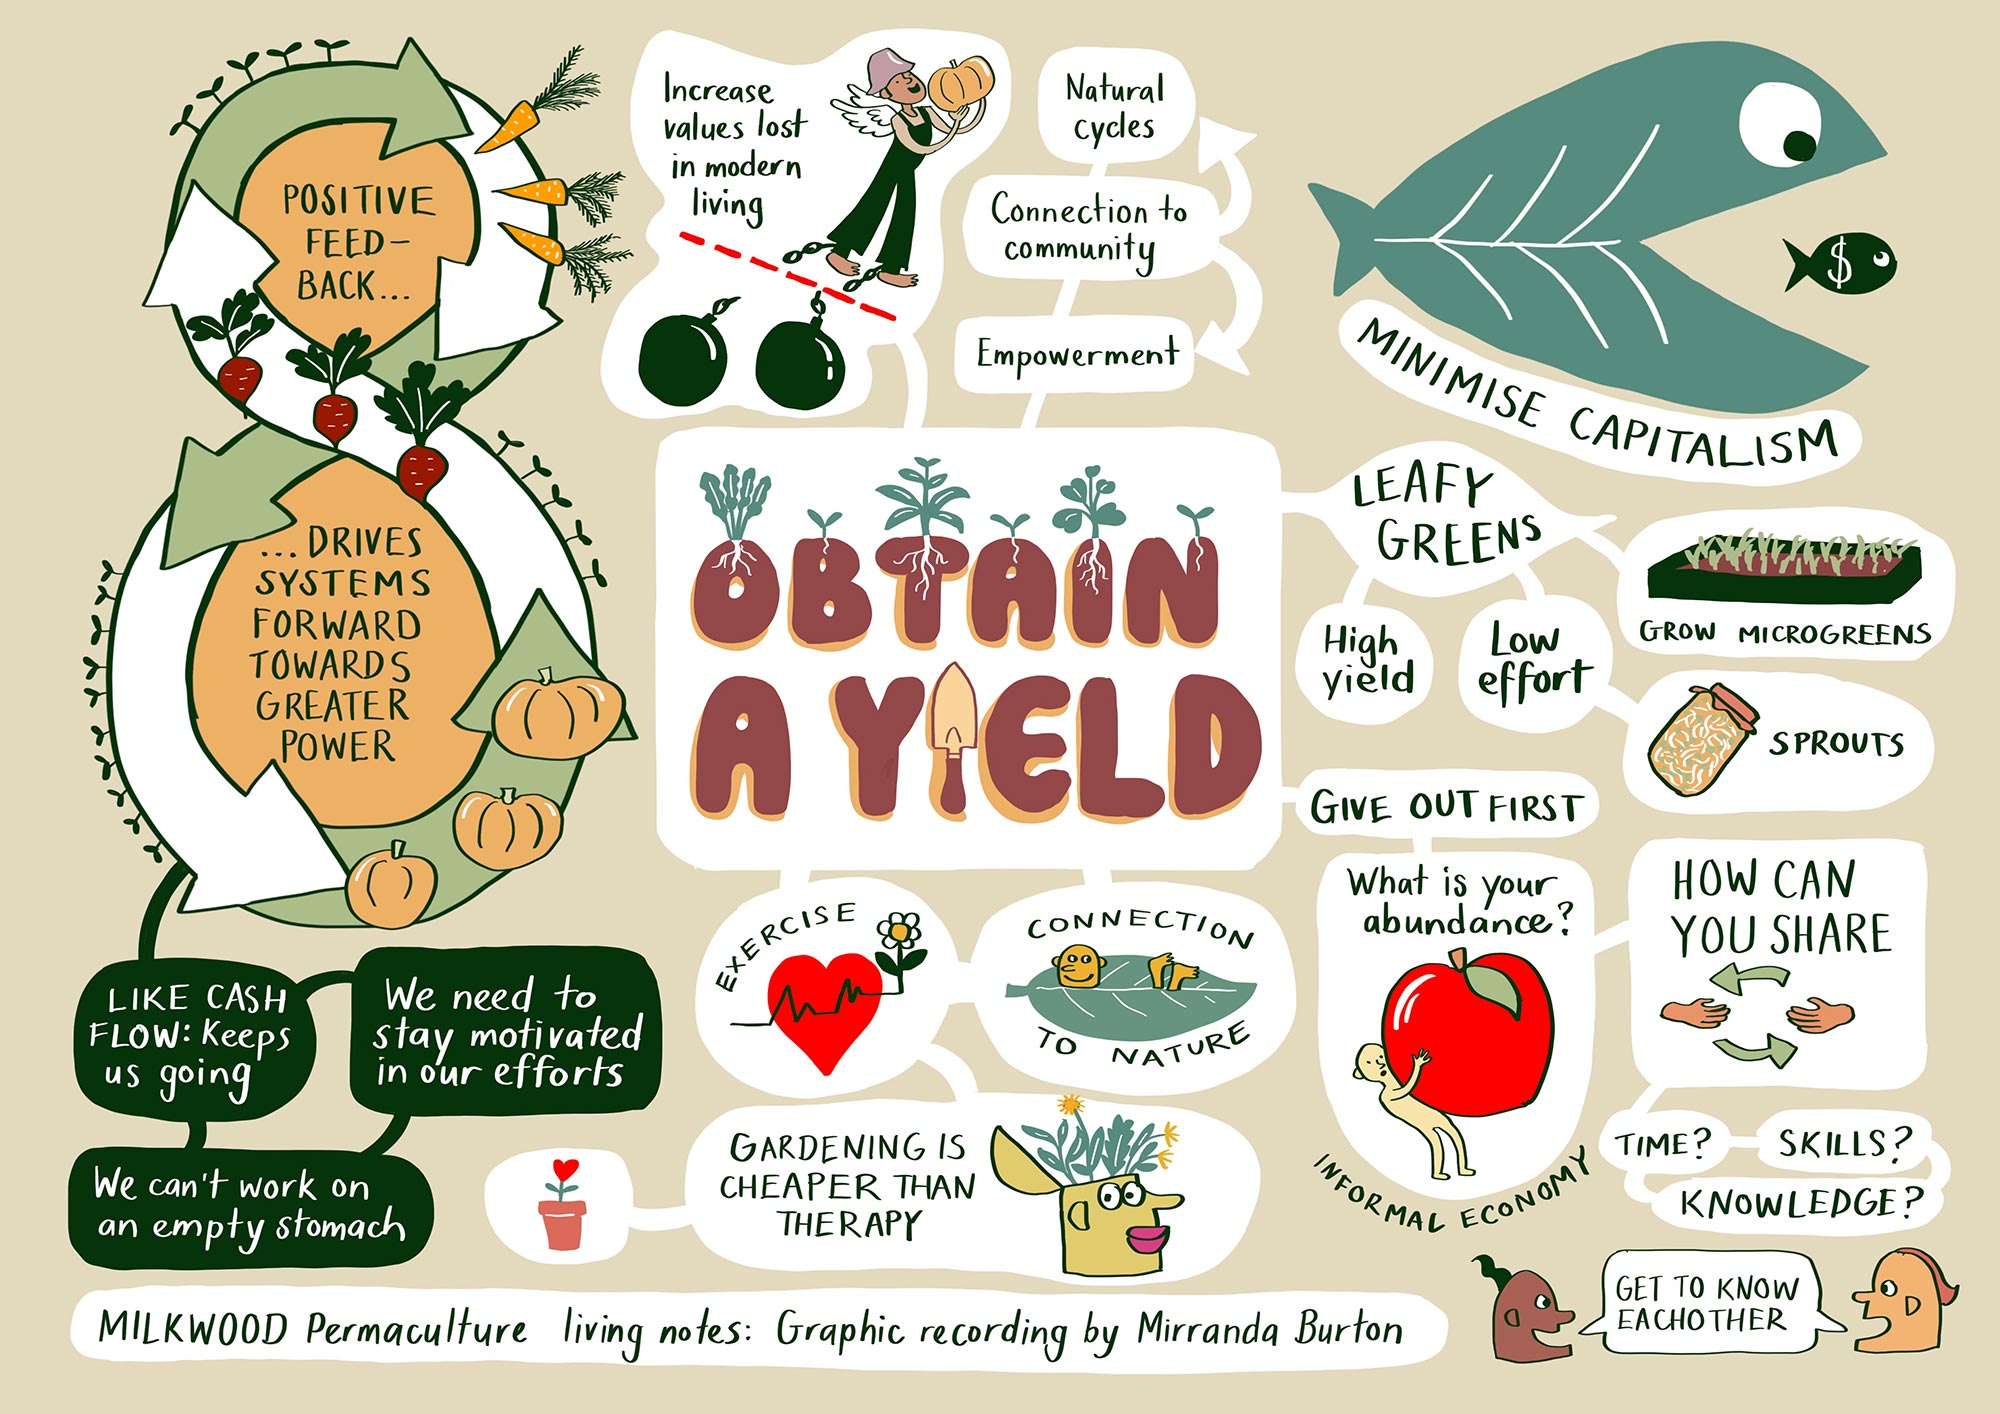 Permaculture principle #3 - Obtain a Yield